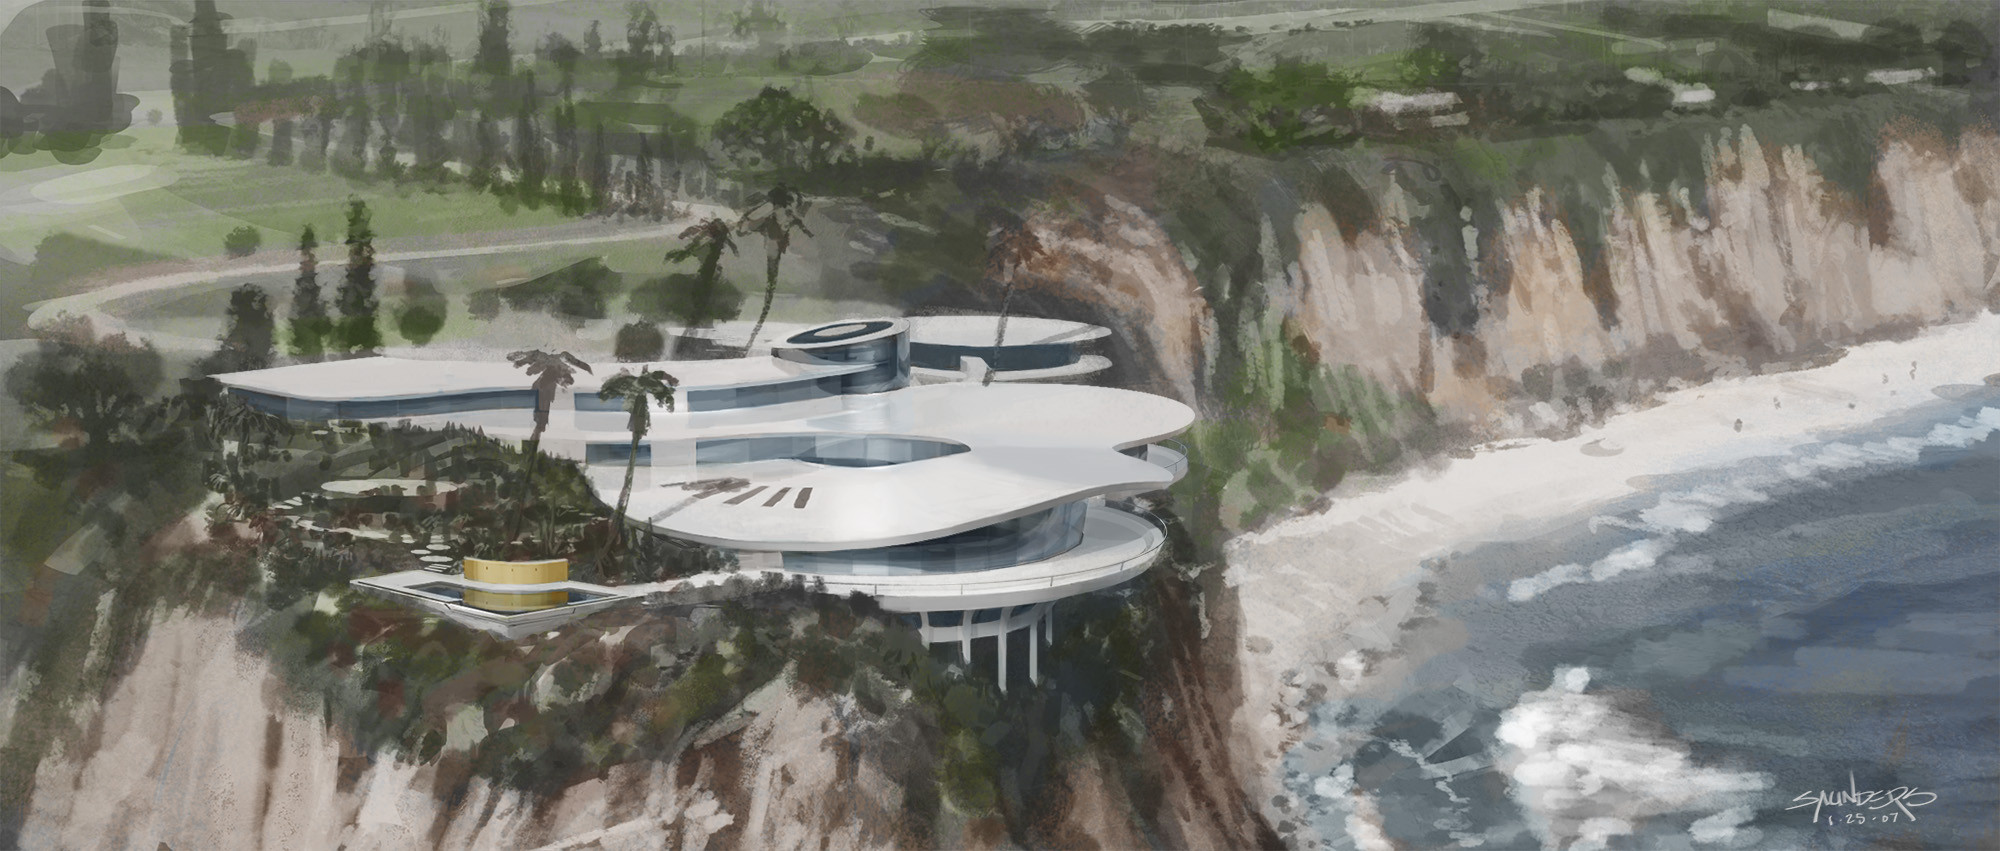 Final concept art for the Stark House on Point Dume.